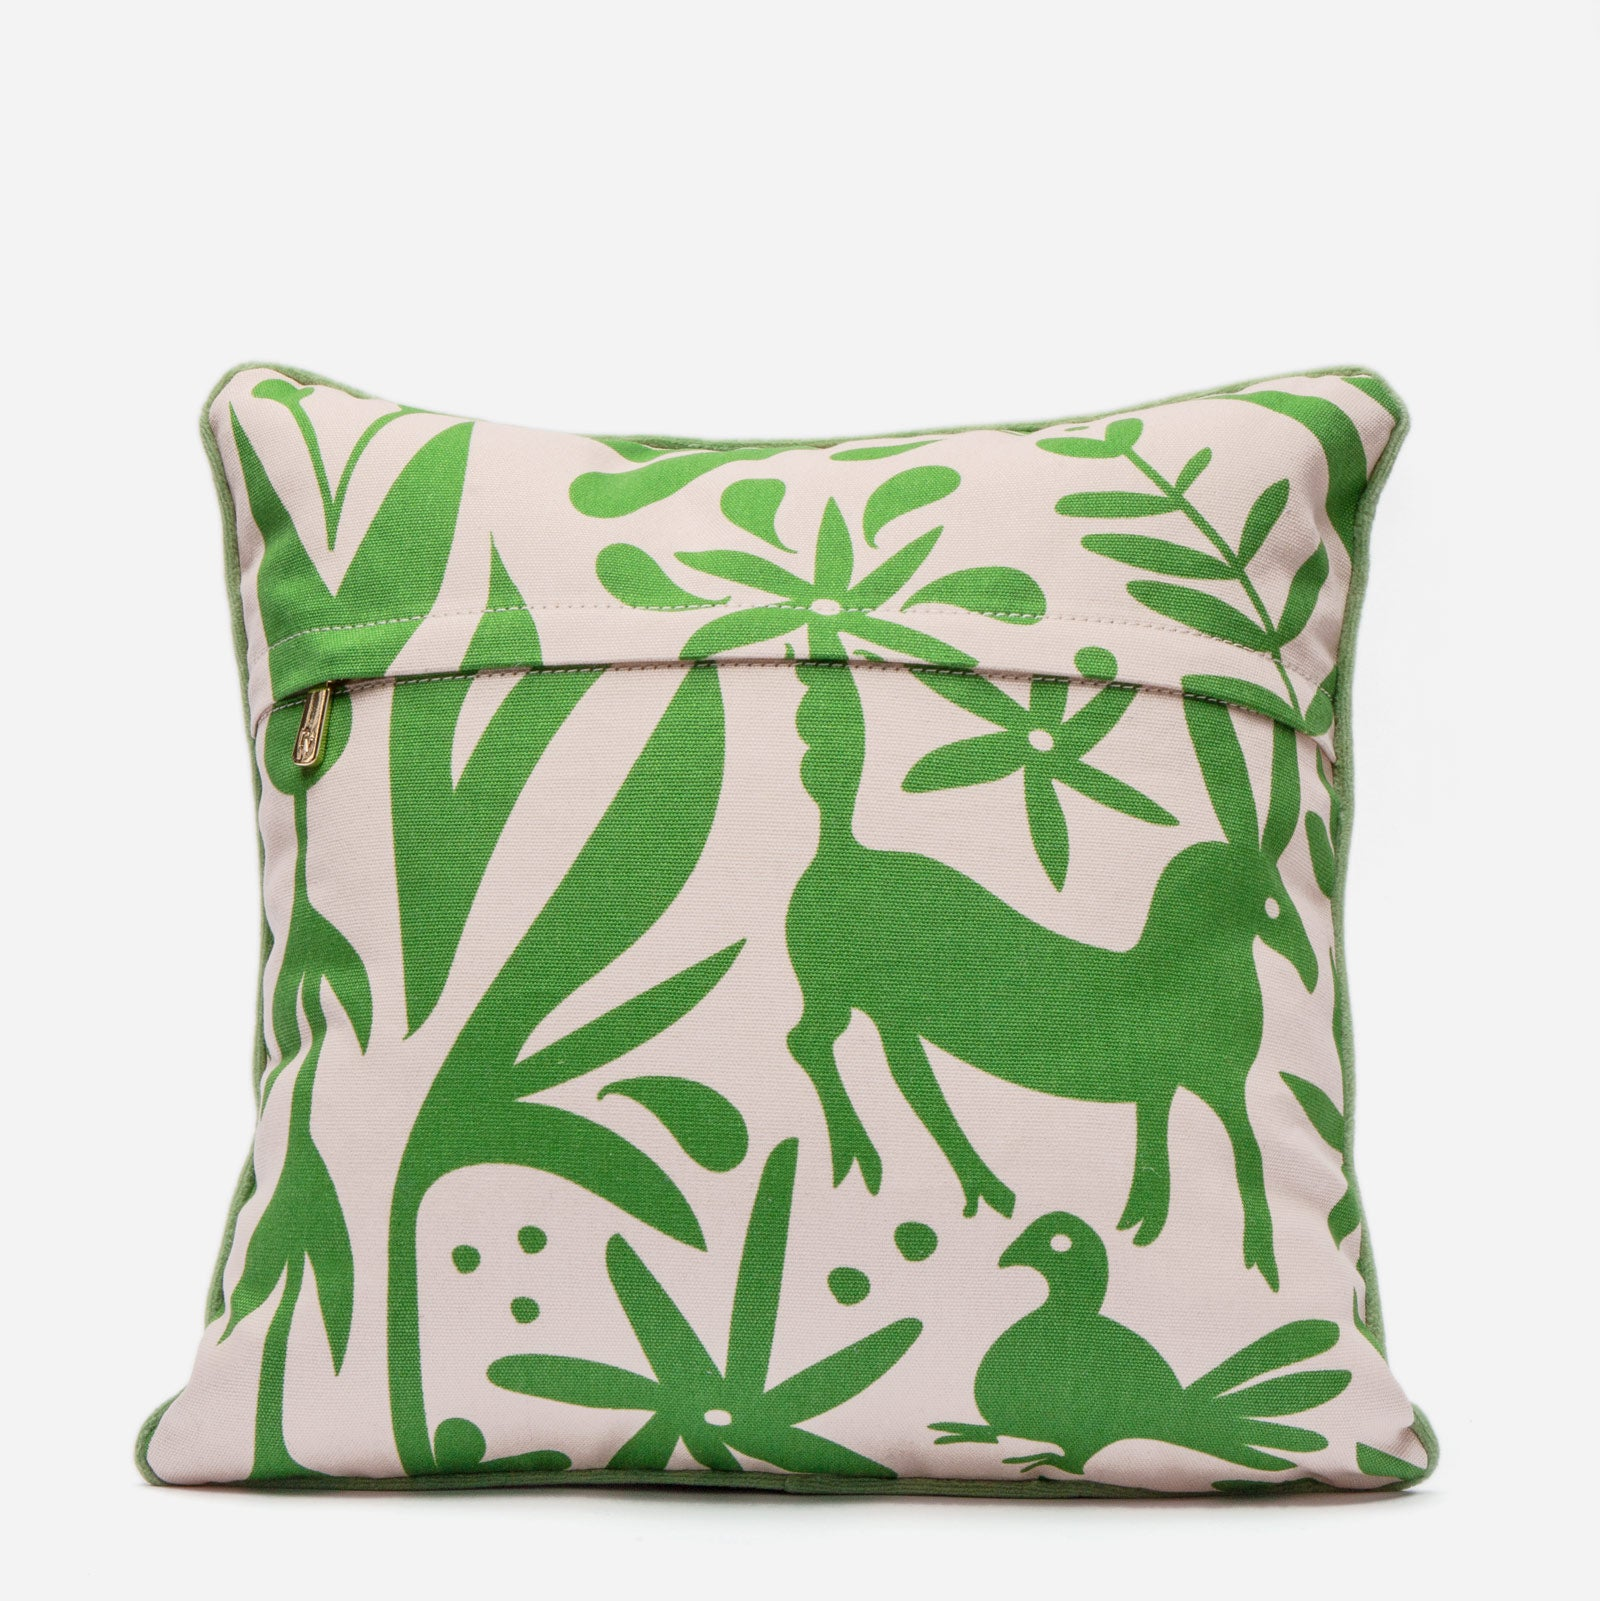 Veracruz Throw Pillow Green